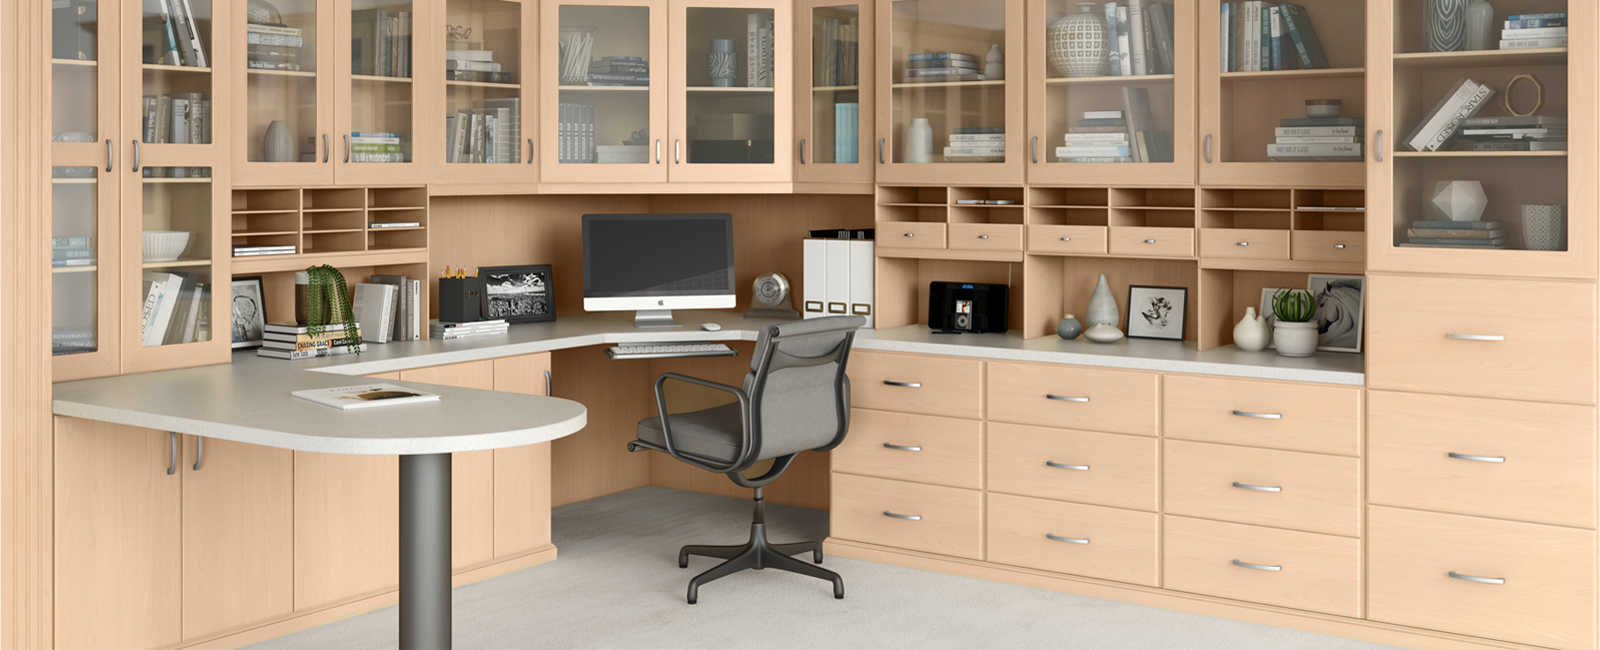 Home Office Cabinets Home Office Cabinets And Organization Products